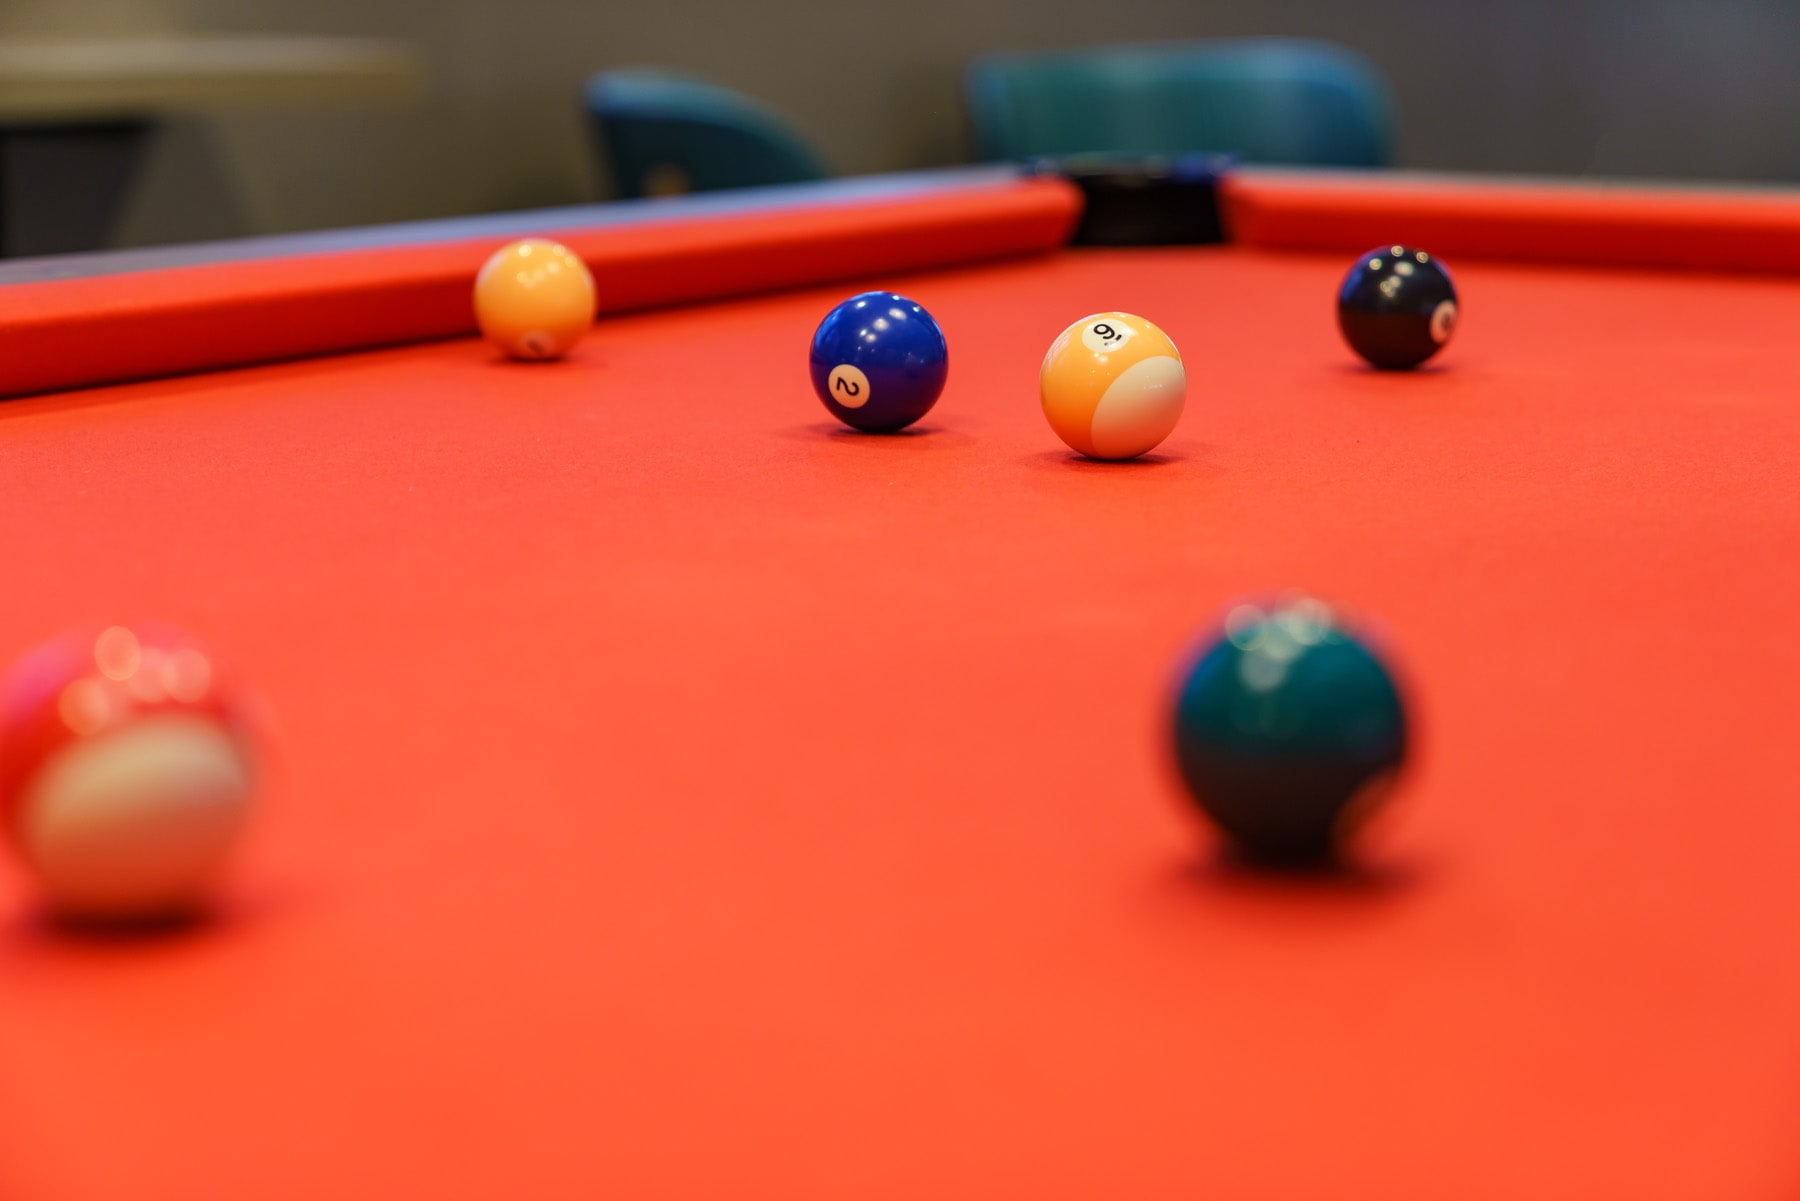 Billard balls scattered on snooker table